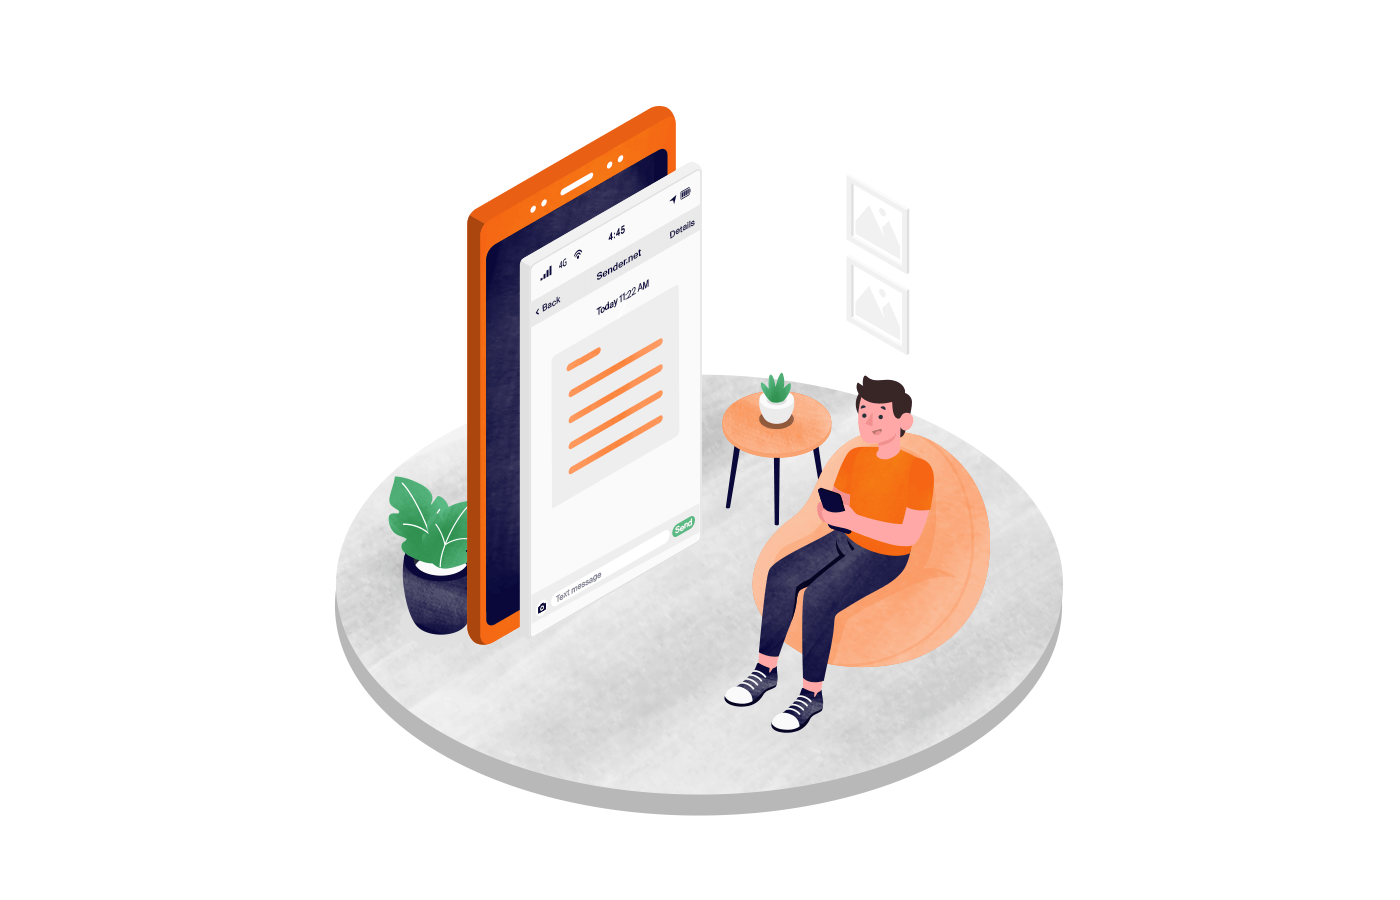 payment_successful_sms_illustration